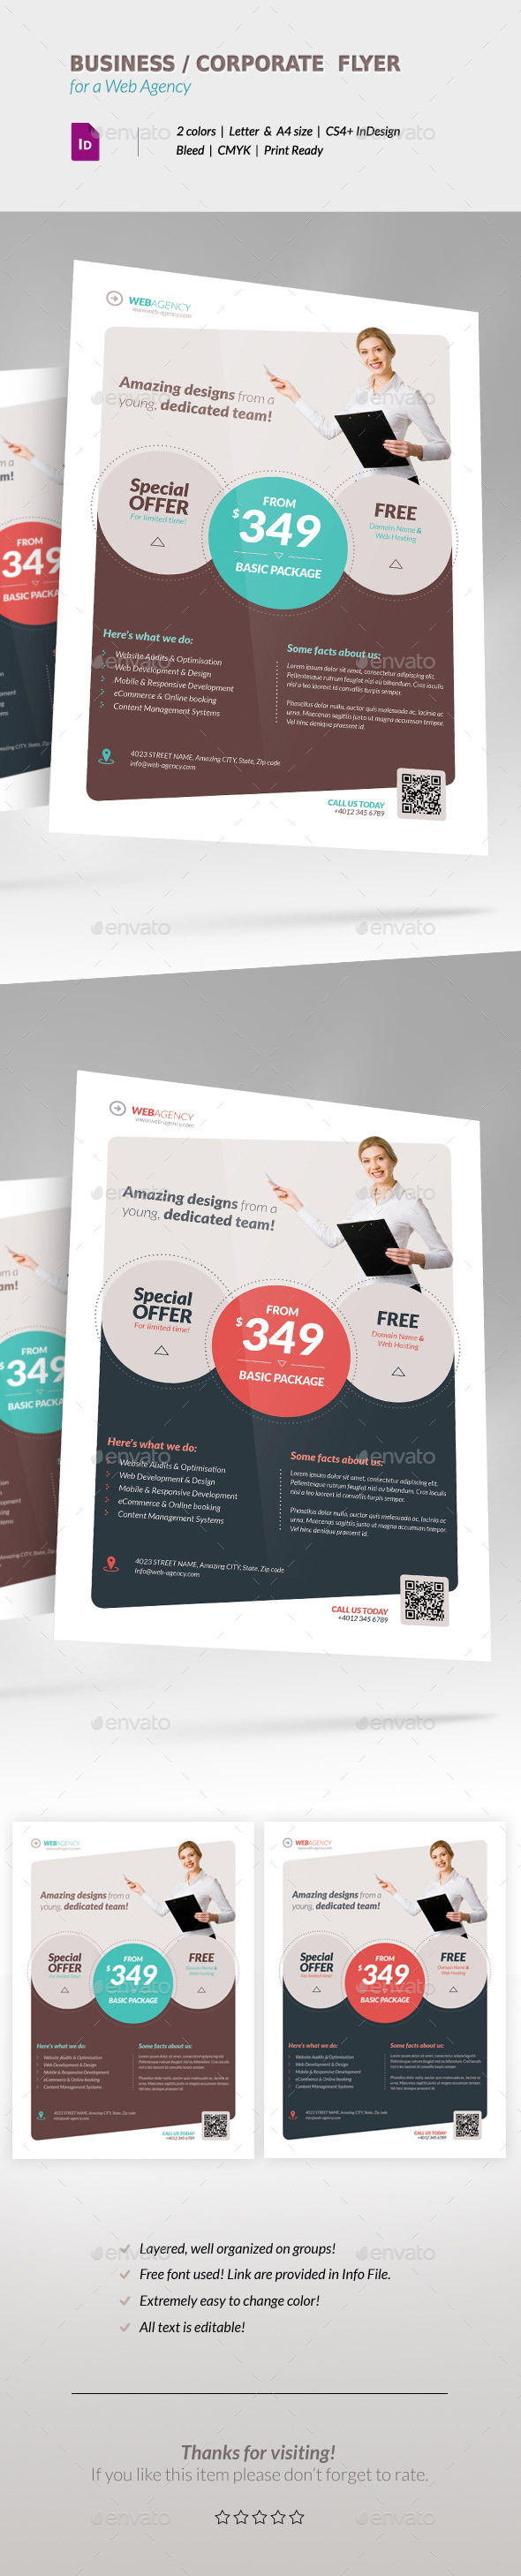 GraphicRiver Business Corporate Flyer for Web Agency 11507690